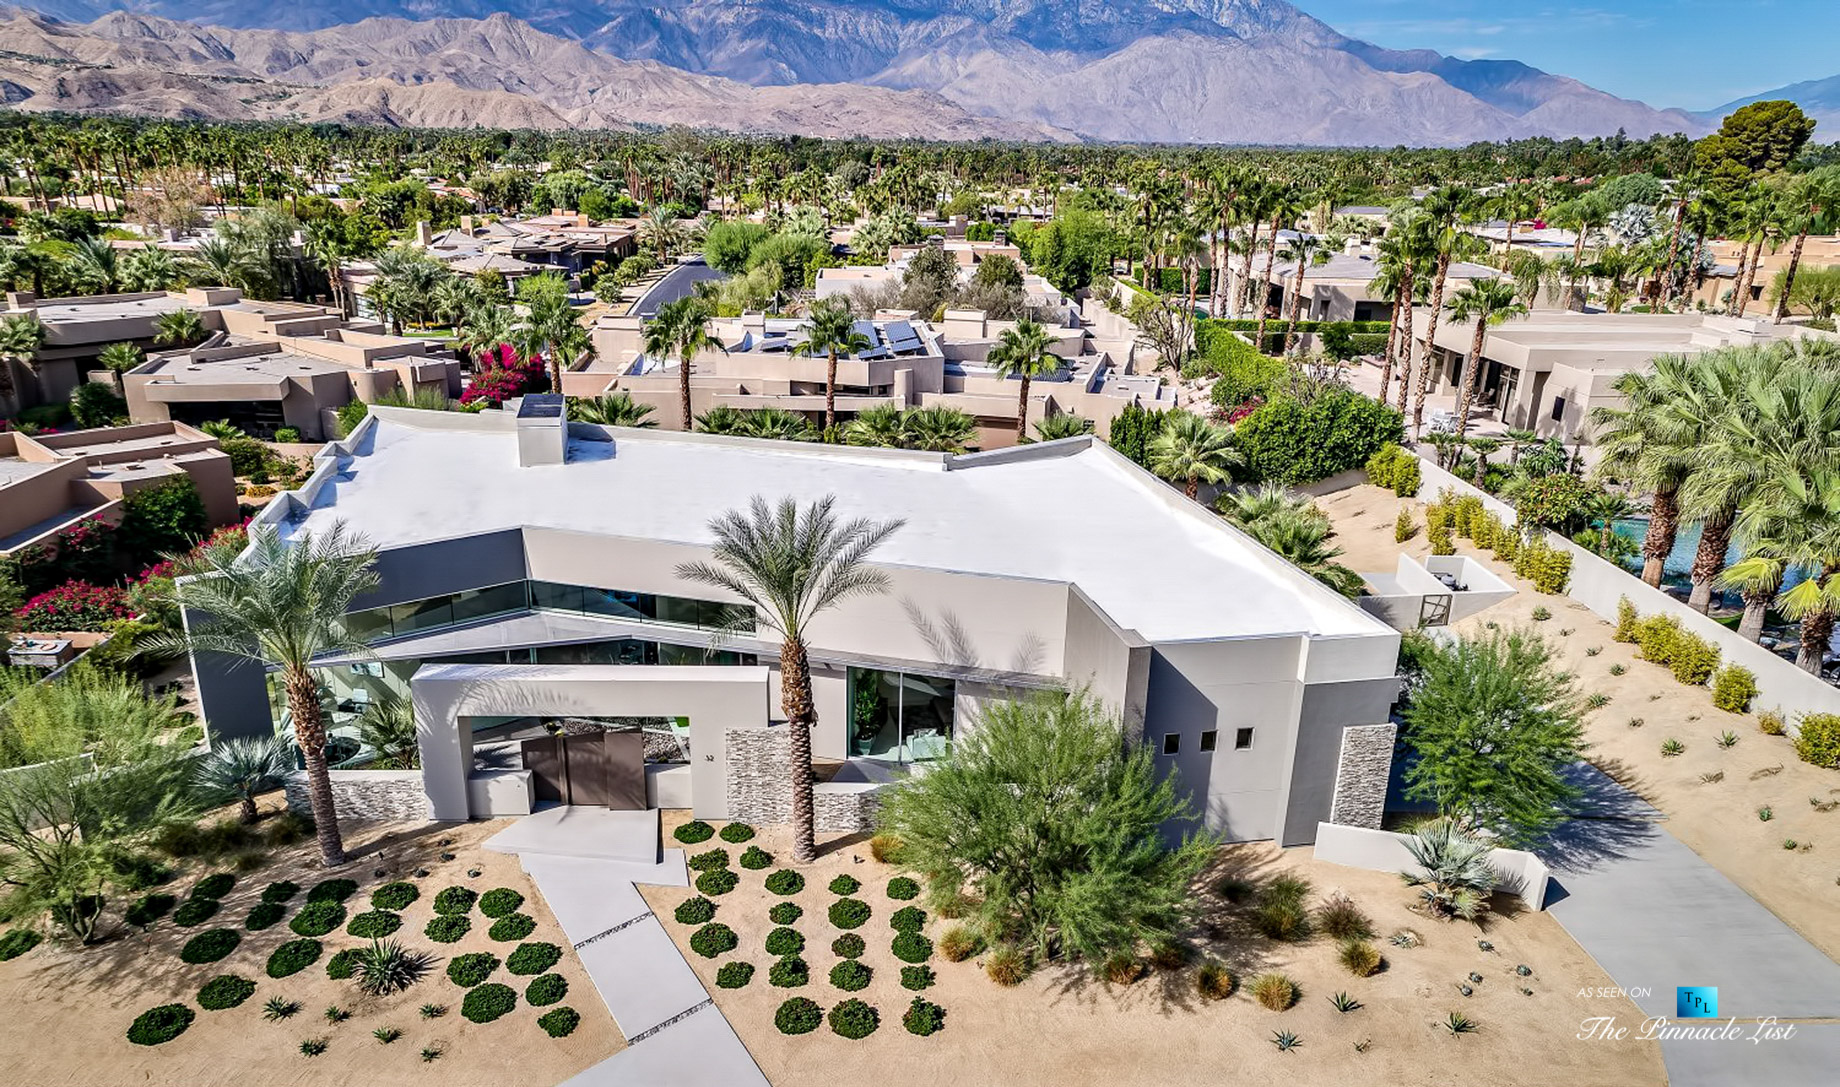 32 Ambassador Cir, Rancho Mirage, CA, USA 🇺🇸 – Showcase